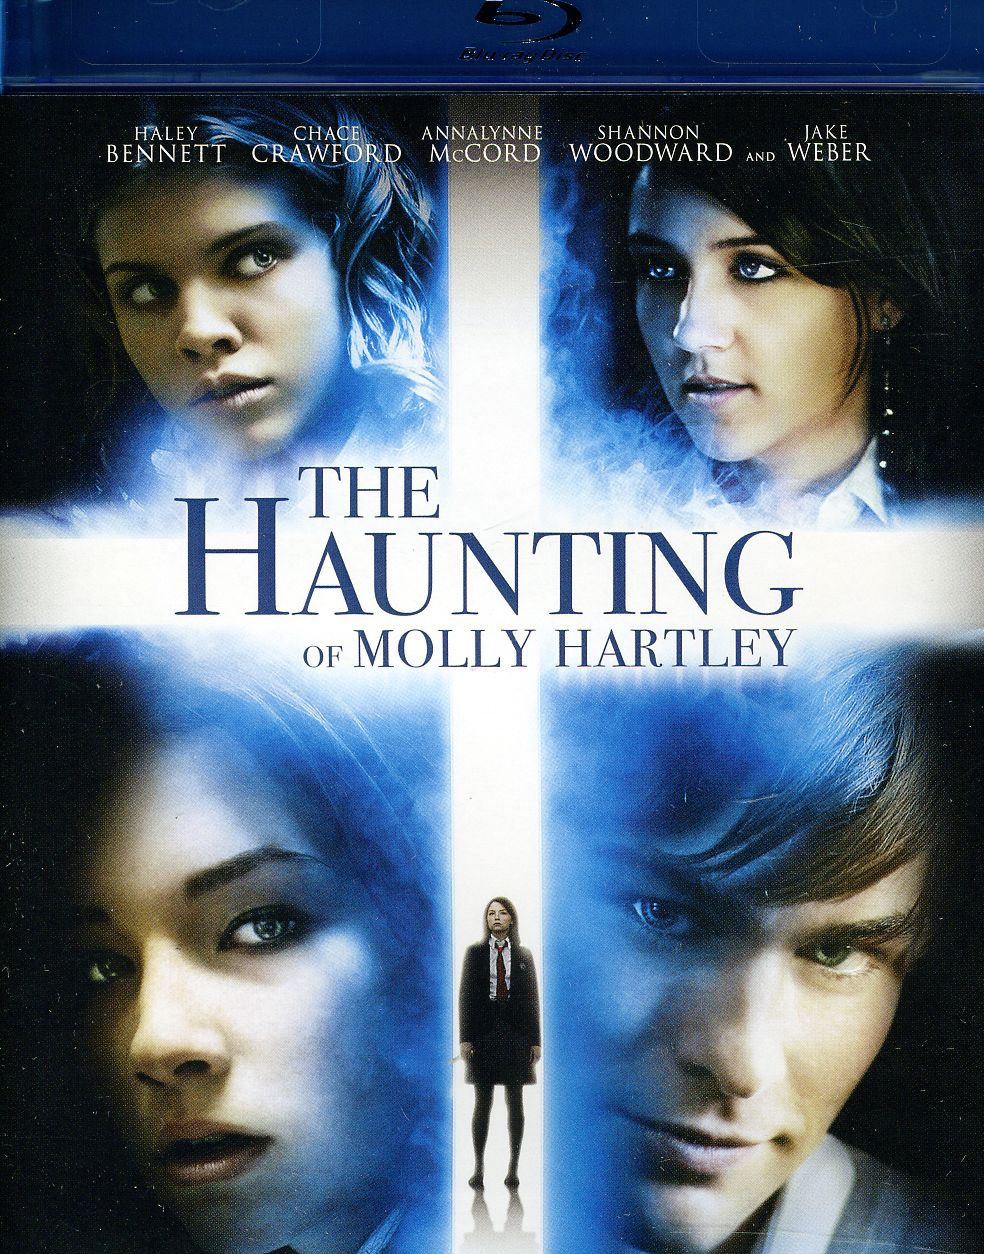 The Haunting Of Molly Hartley (Blu-ray Disc)